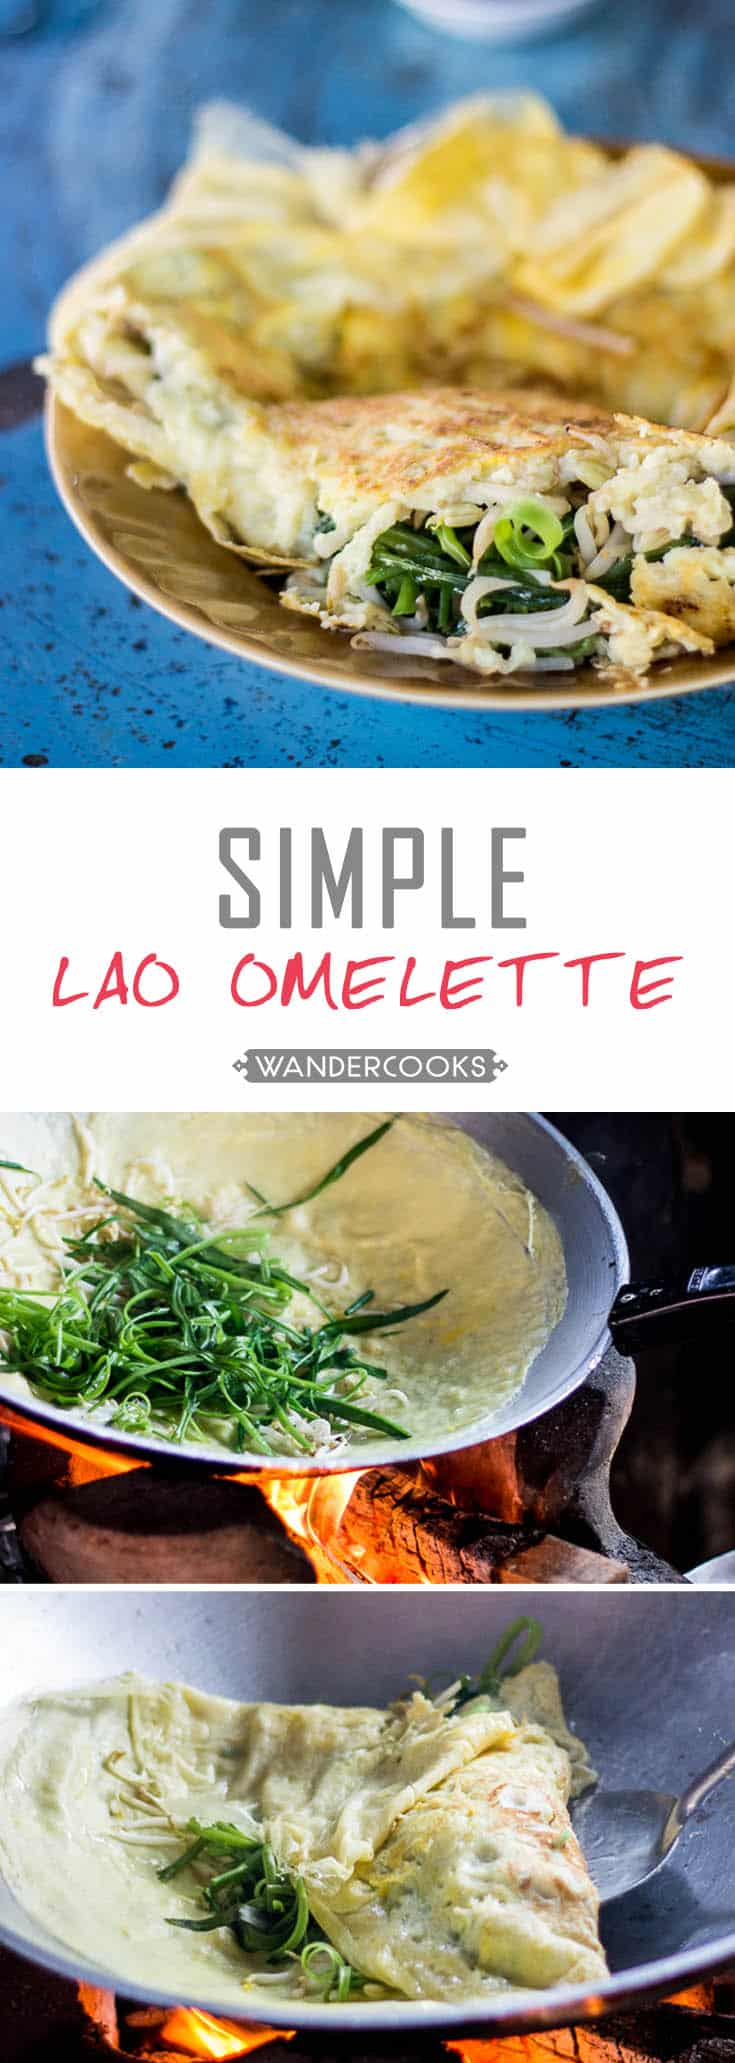 Simple Lao Omelette - This fluffy egg delight is stuffed full of veggies to keep you satisfied all afternoon. Vegetarian. | wandercooks.com